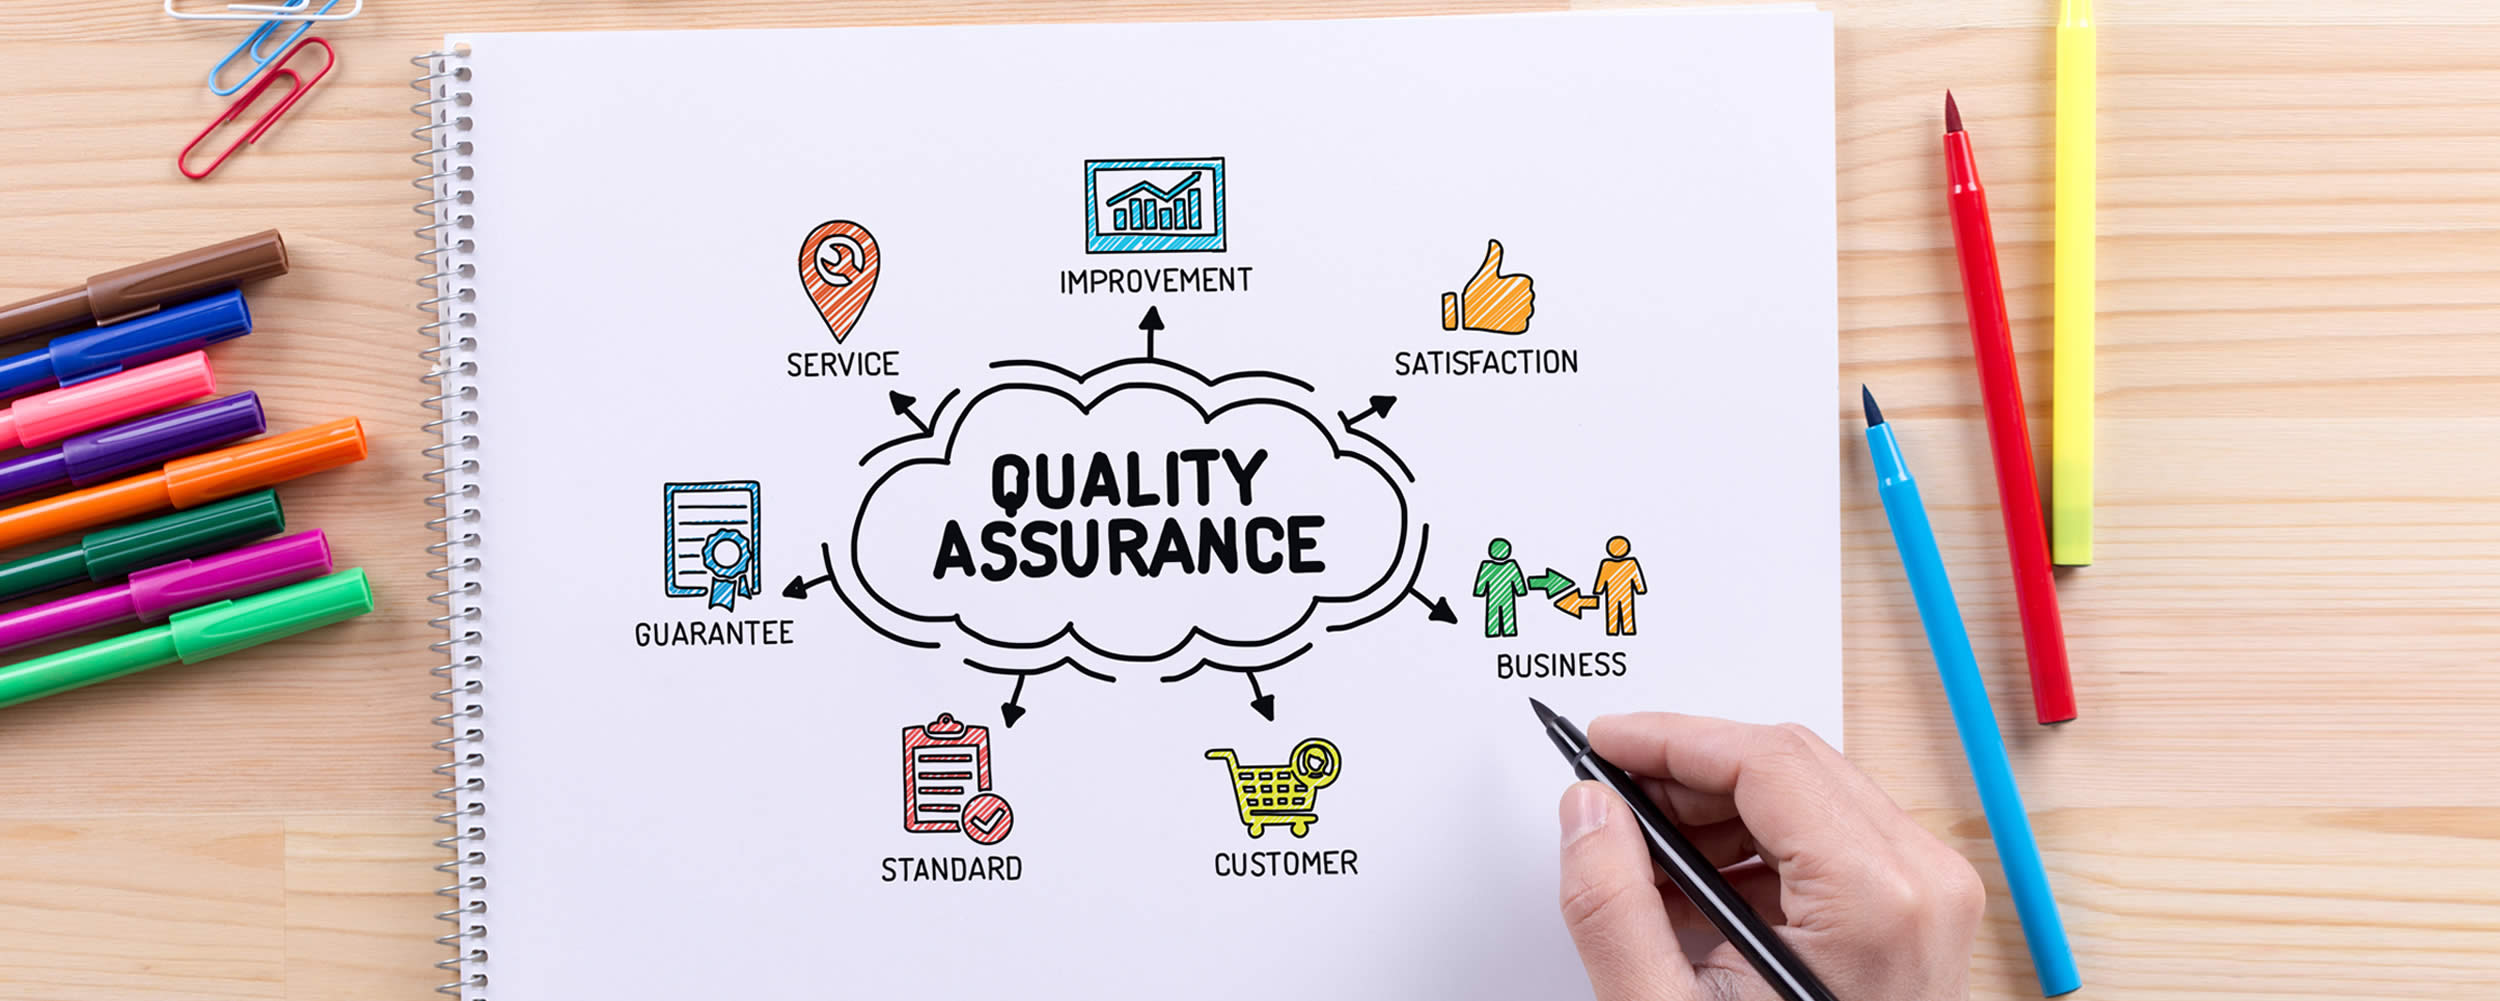 Care Homes Quality Assurance